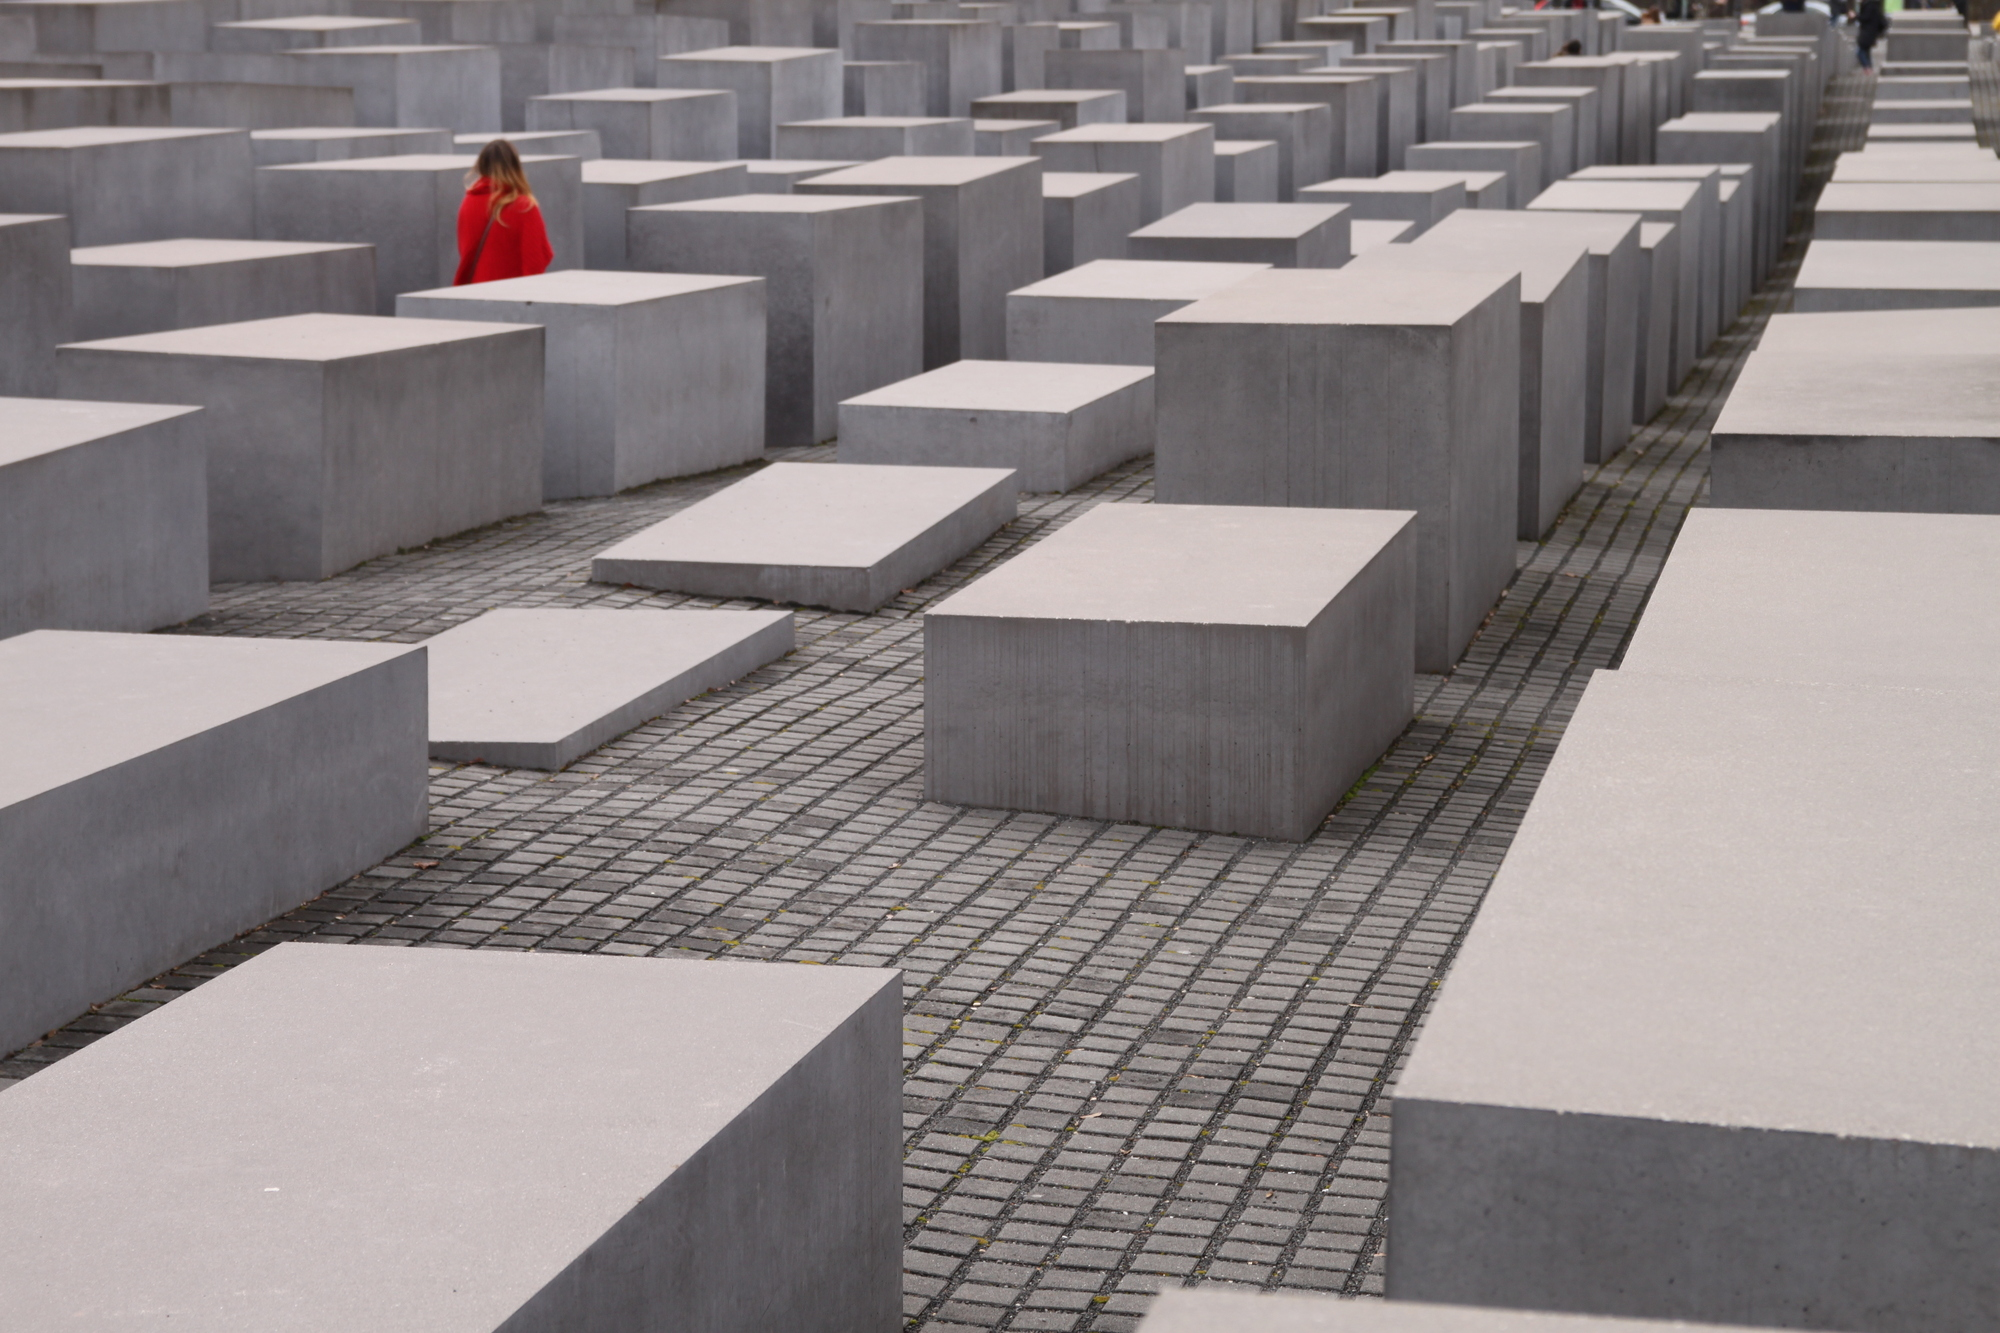 Gallery of Peter Eisenman: Architect. Theorist and Educator Marked by Deconstructivism - 2